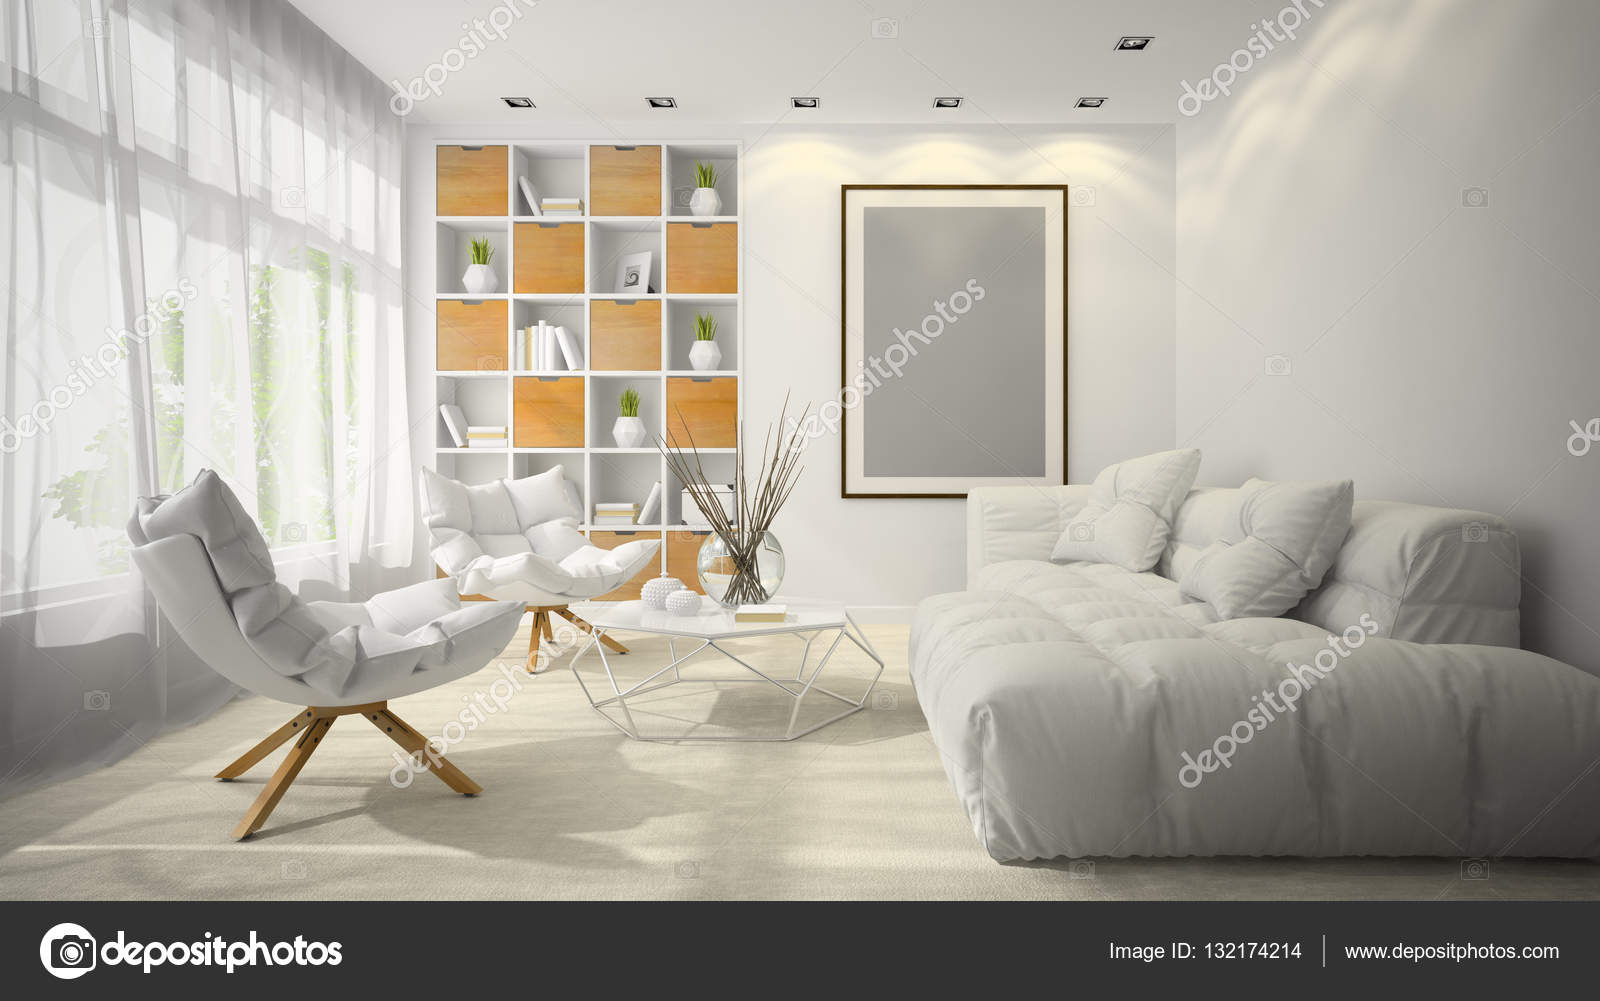 Interieur van moderne design kamer d illustratie u stockfoto